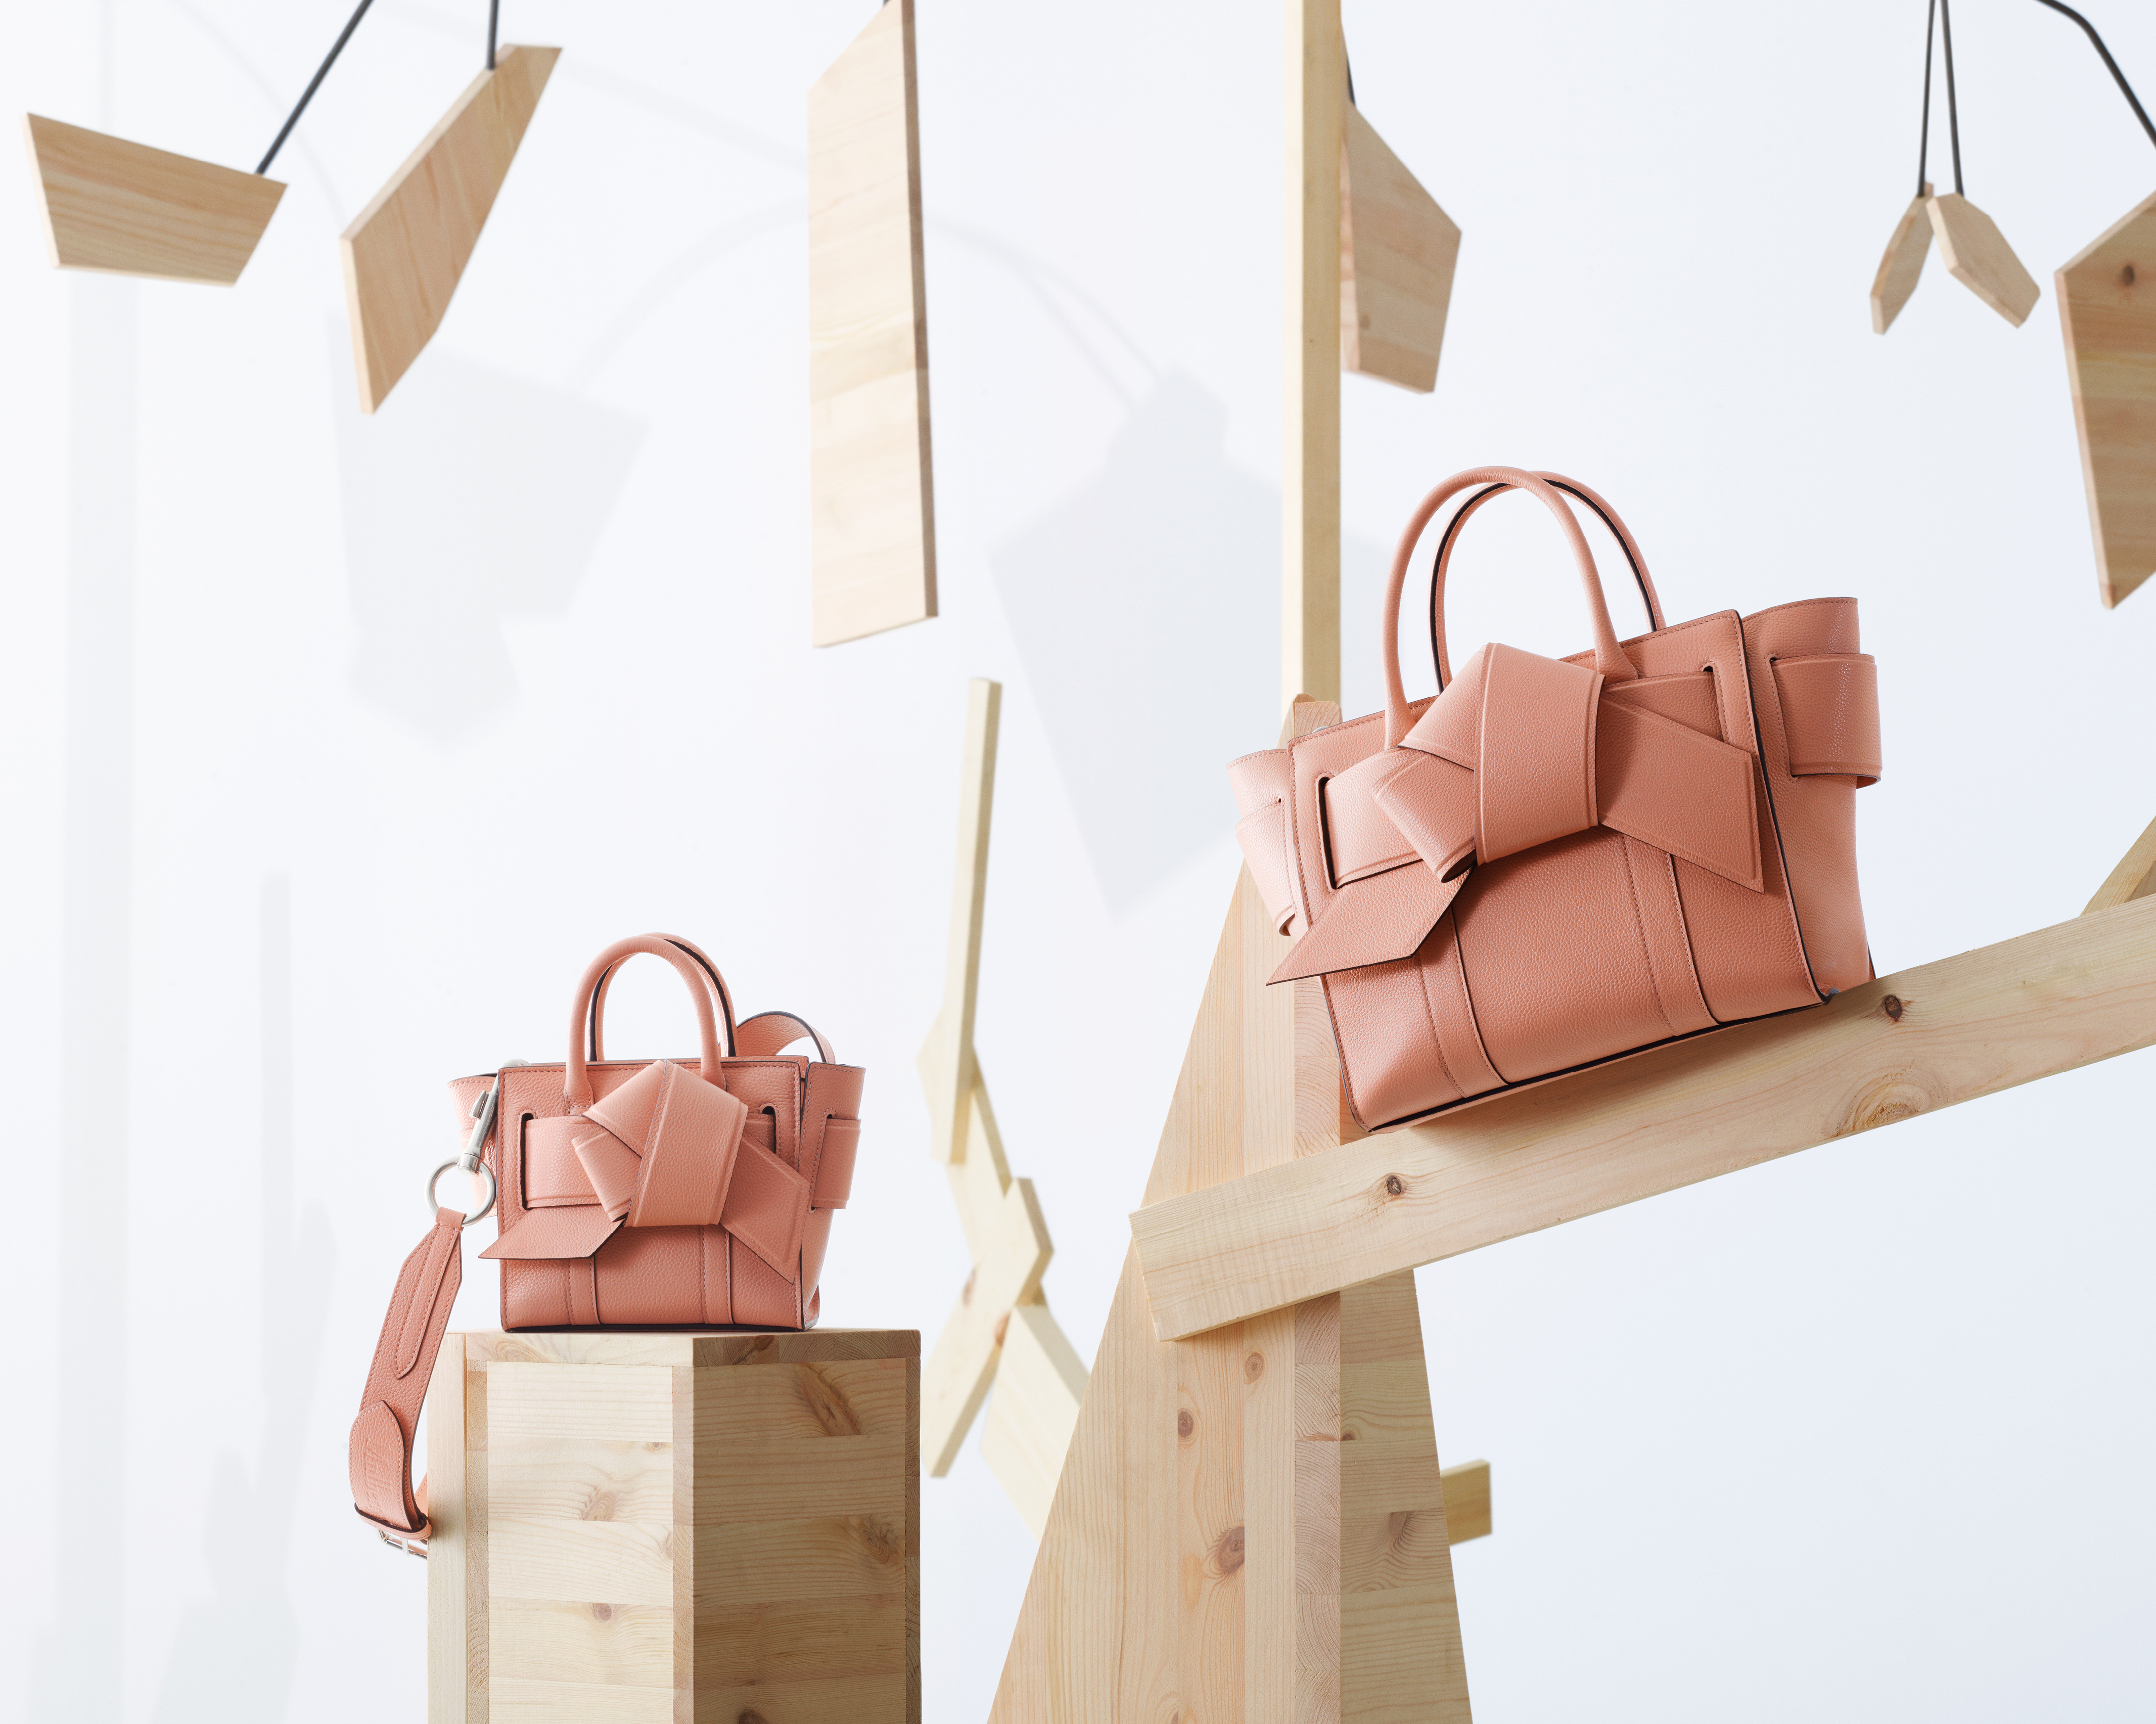 Acne Studios Mulberry 6 - Acne Studios And Mulberry Become Fashion's Latest Odd Couple